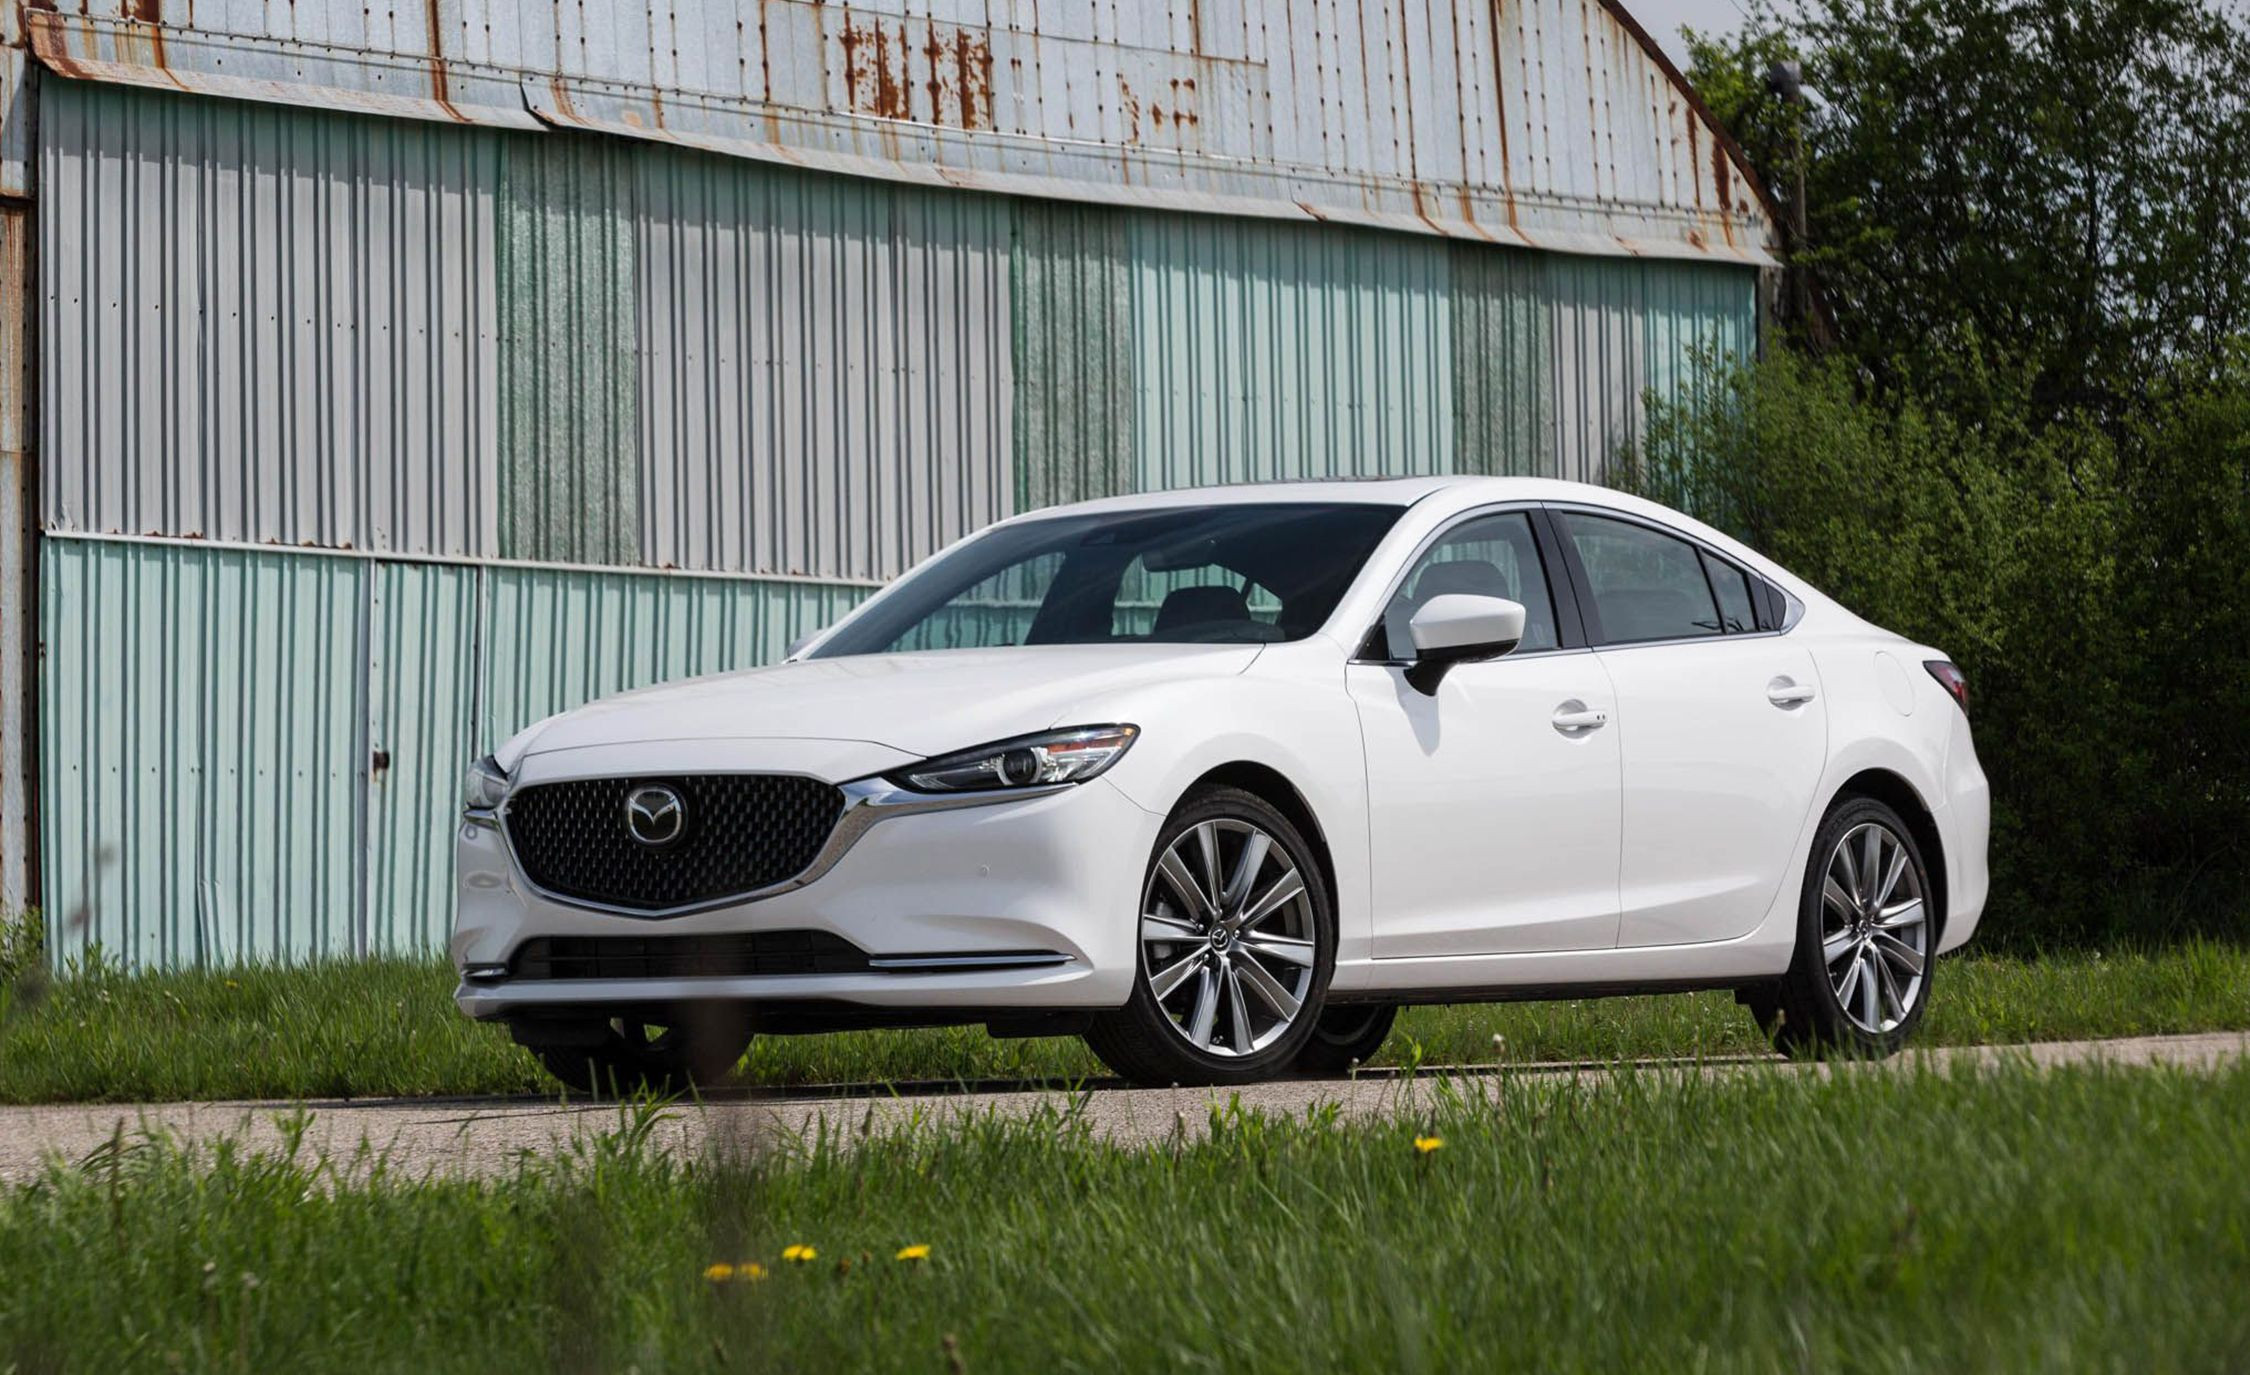 2019 mazda mazda 6 reviews mazda mazda 6 price photos and specs car and driver. Black Bedroom Furniture Sets. Home Design Ideas